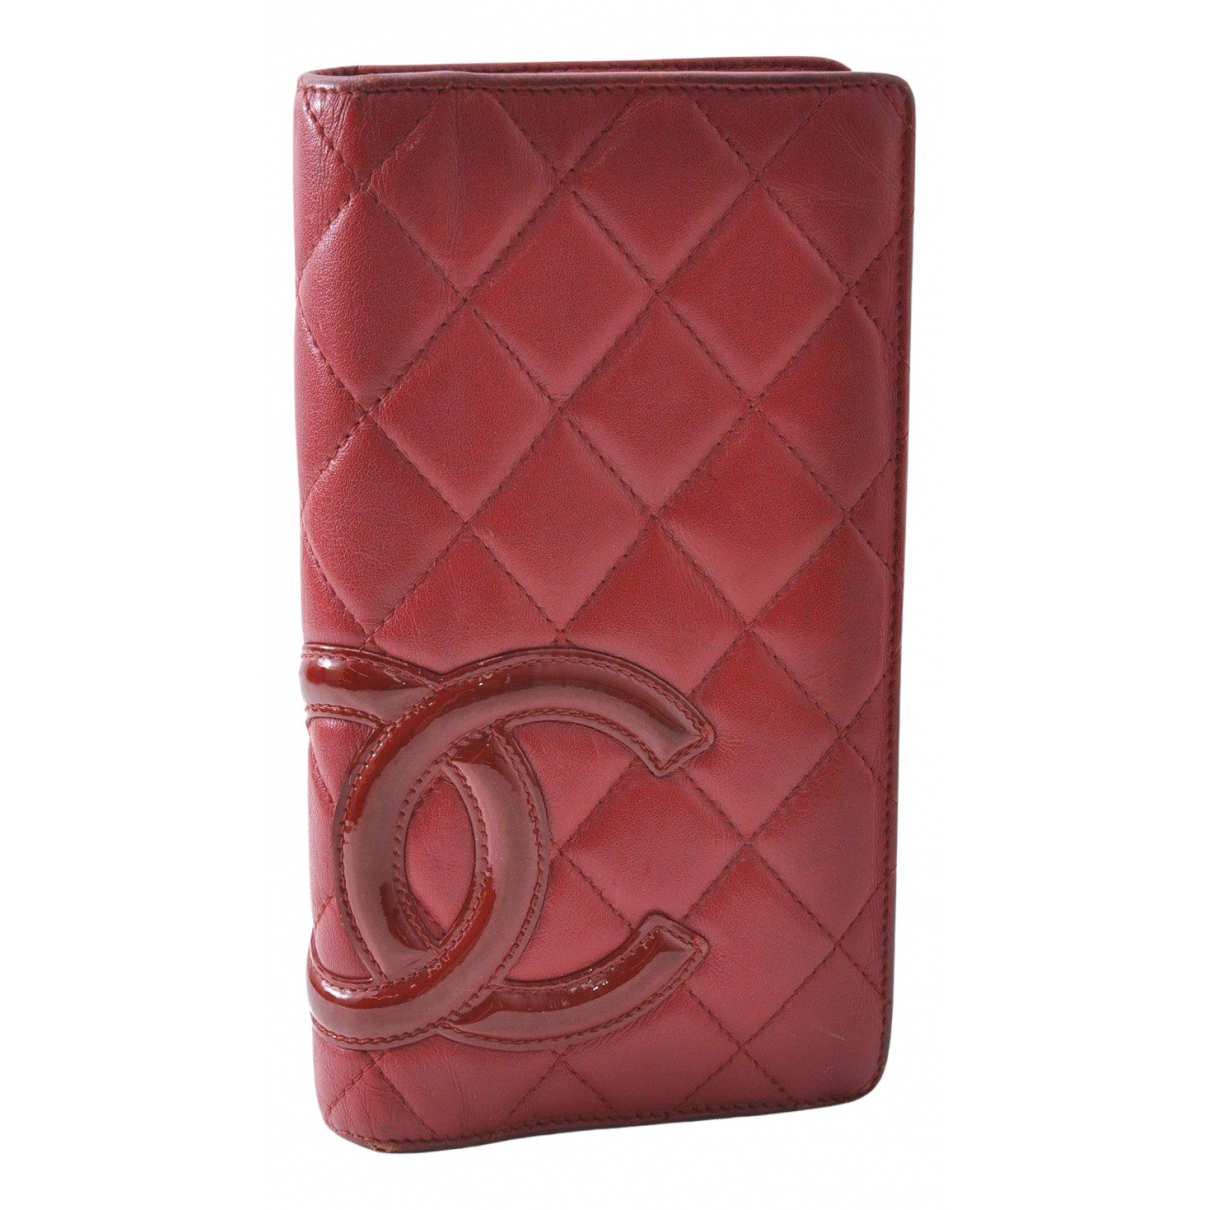 Chanel Cambon Red Leather wallet for Women N